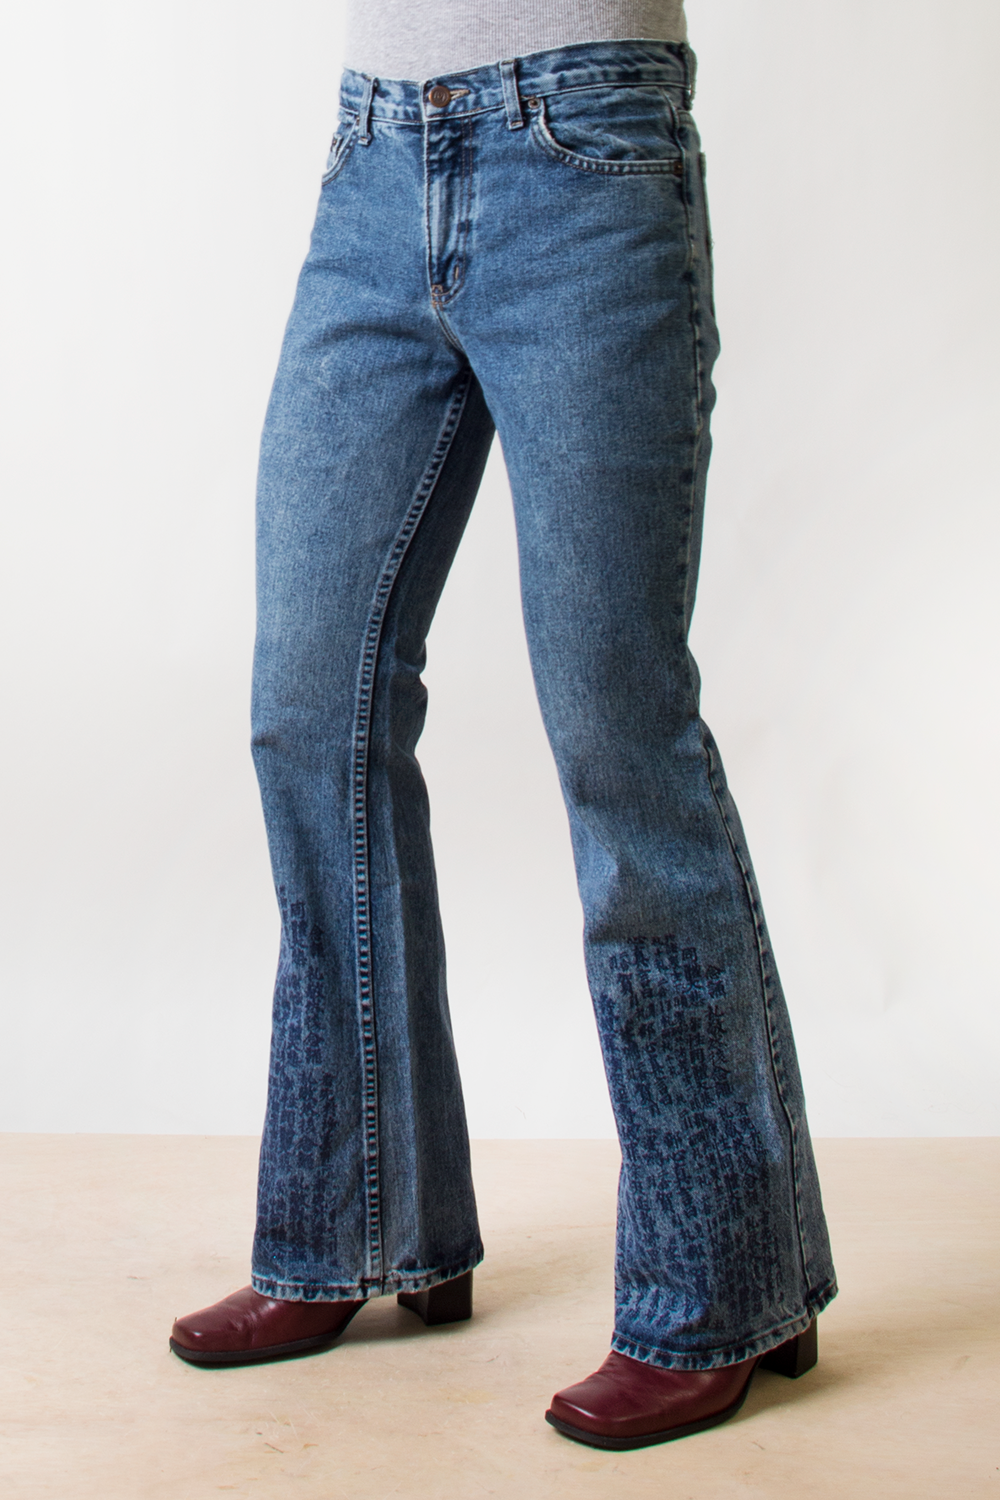 vintage flared jeans with asian scripture at bottom